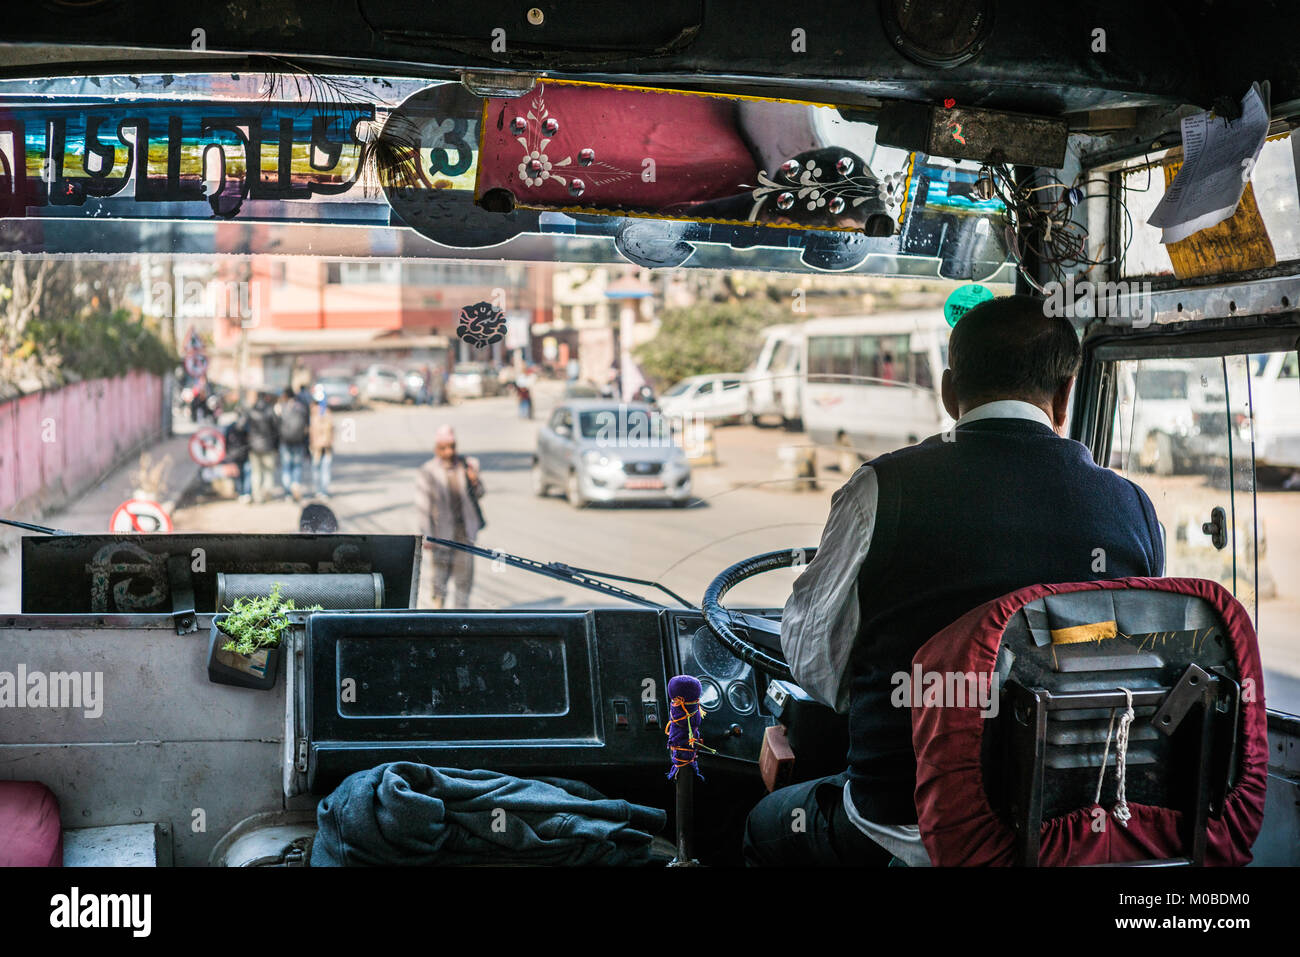 Interior of the public bus in the Kathmandu, Nepal, Asia. - Stock Image